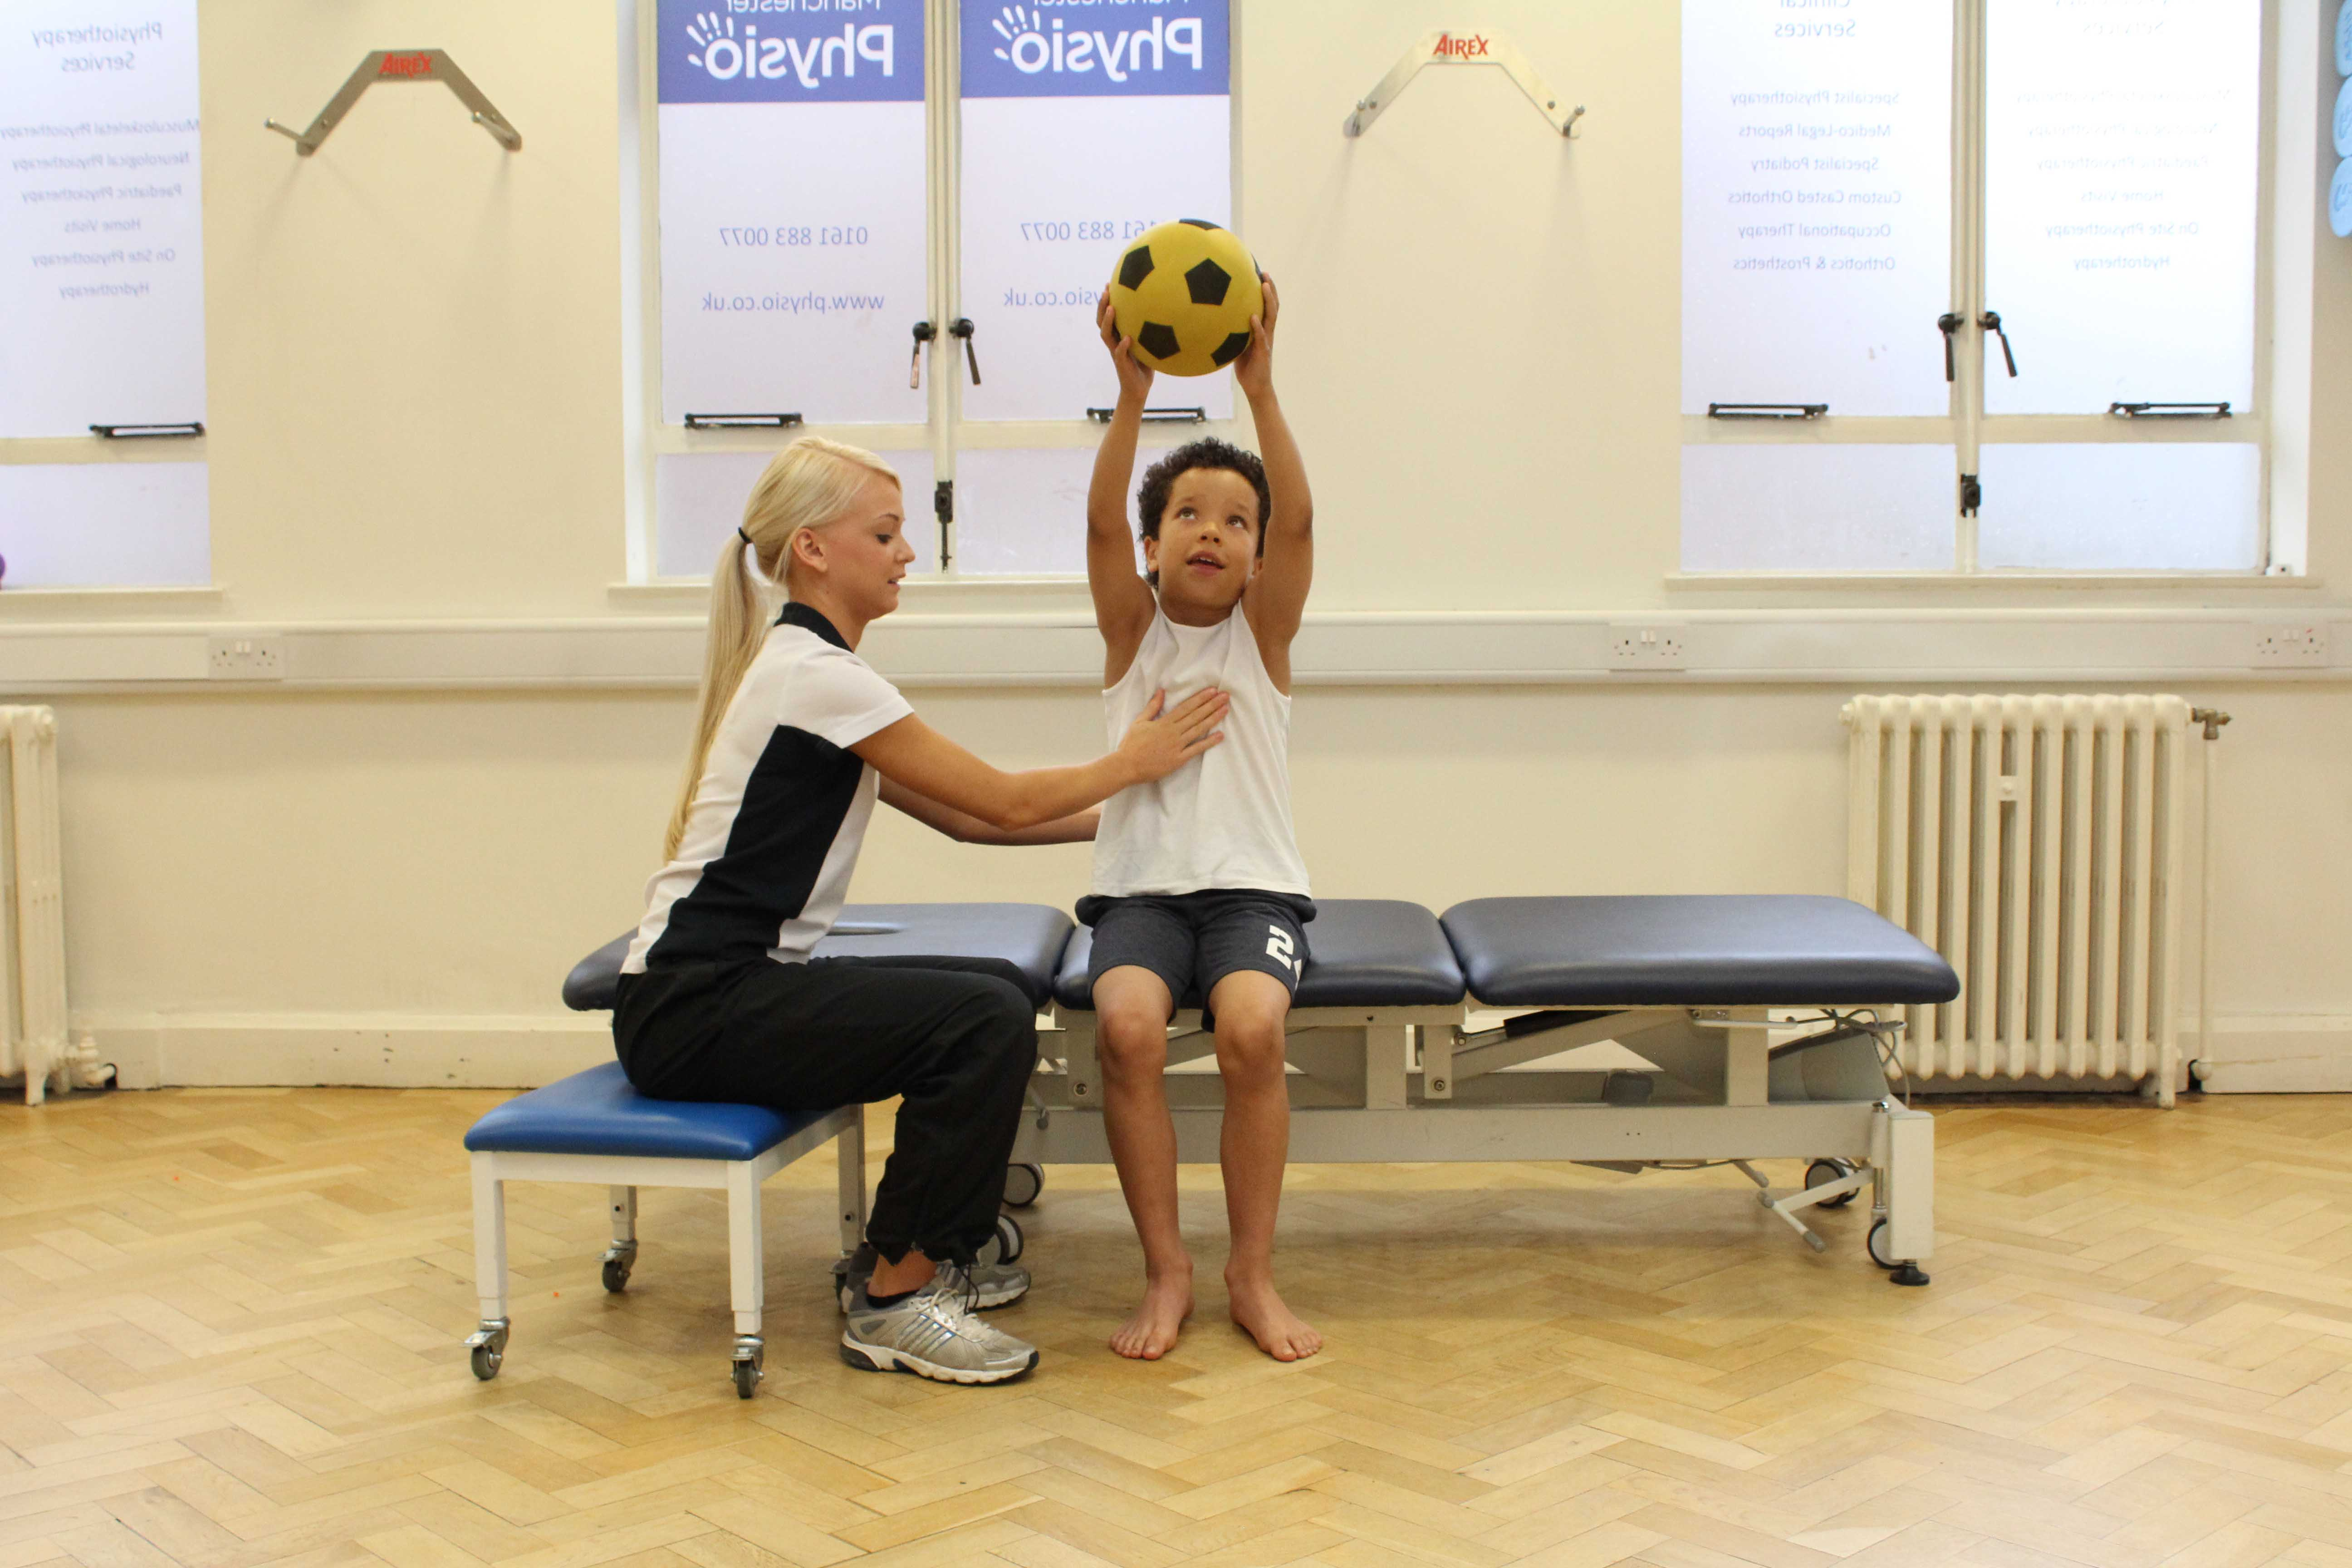 Mobilisation and proprioception exercises supervised by a paediatric physiotherapist